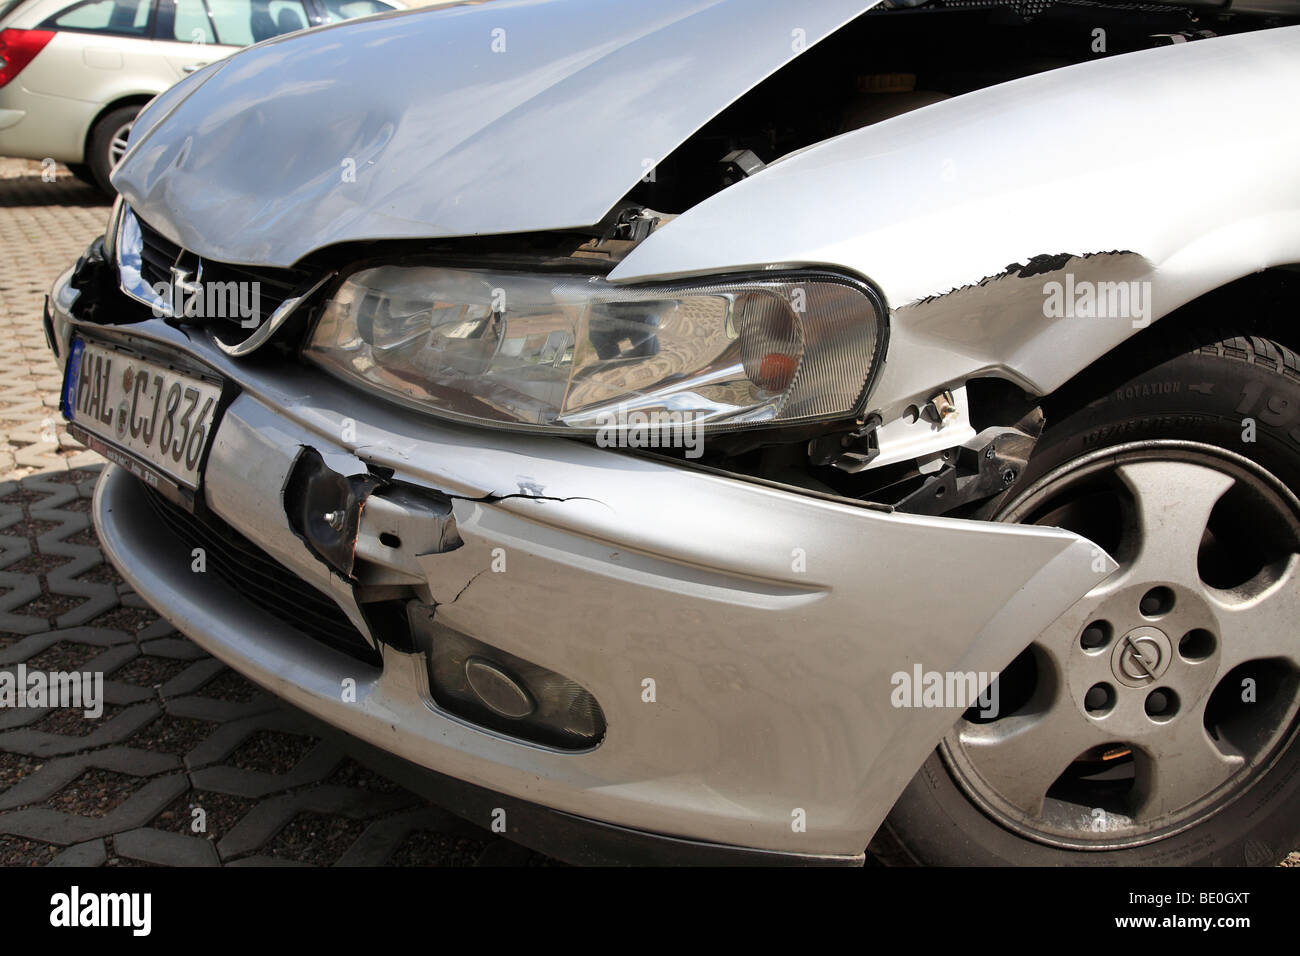 damaged front of a car (Opel Vectra) after an accident - Stock Image